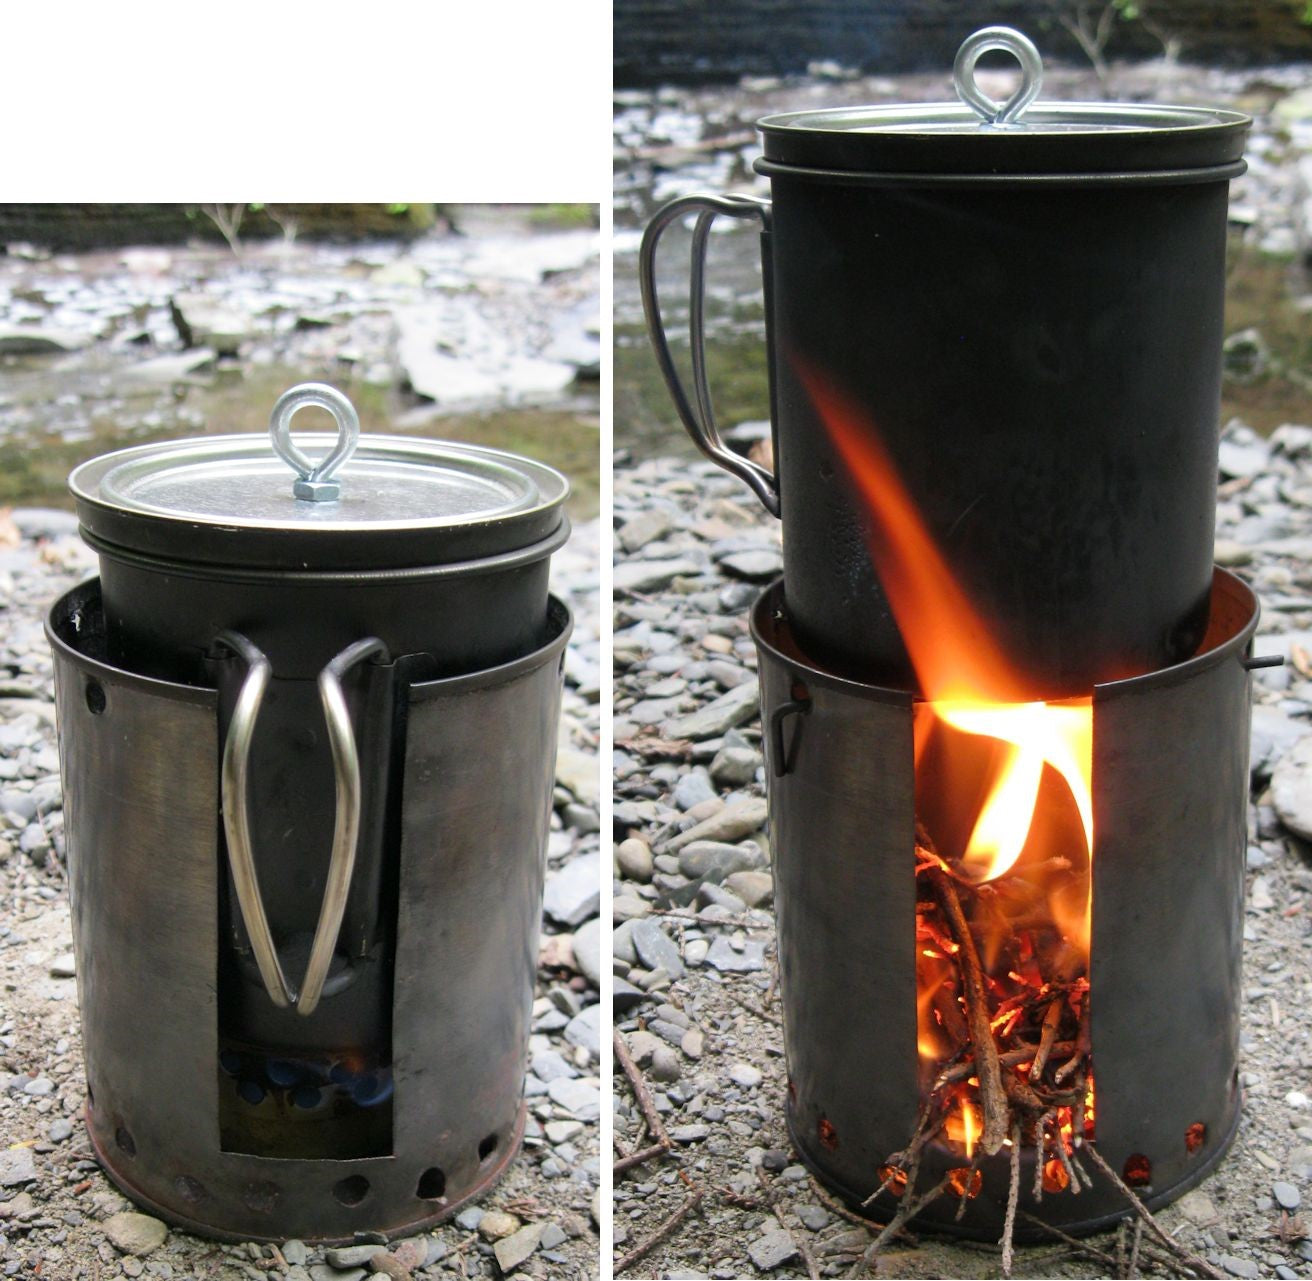 Tube / Can stoves